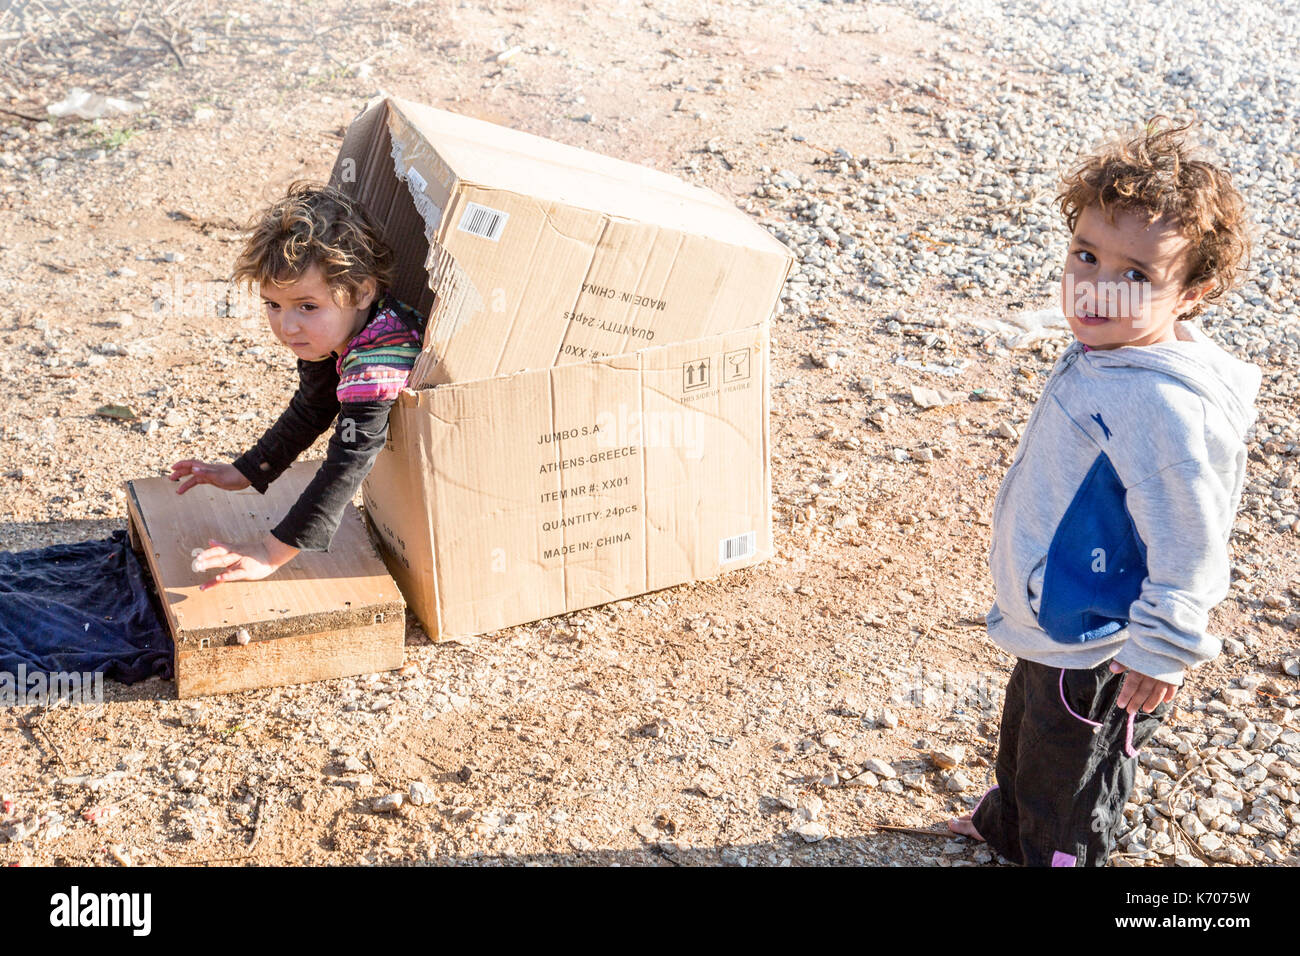 A child plays happily in a cardboard box on the bleak stony ground of the Ritsona Refugee Camp in Greece as his friend looks at the camera. - Stock Image